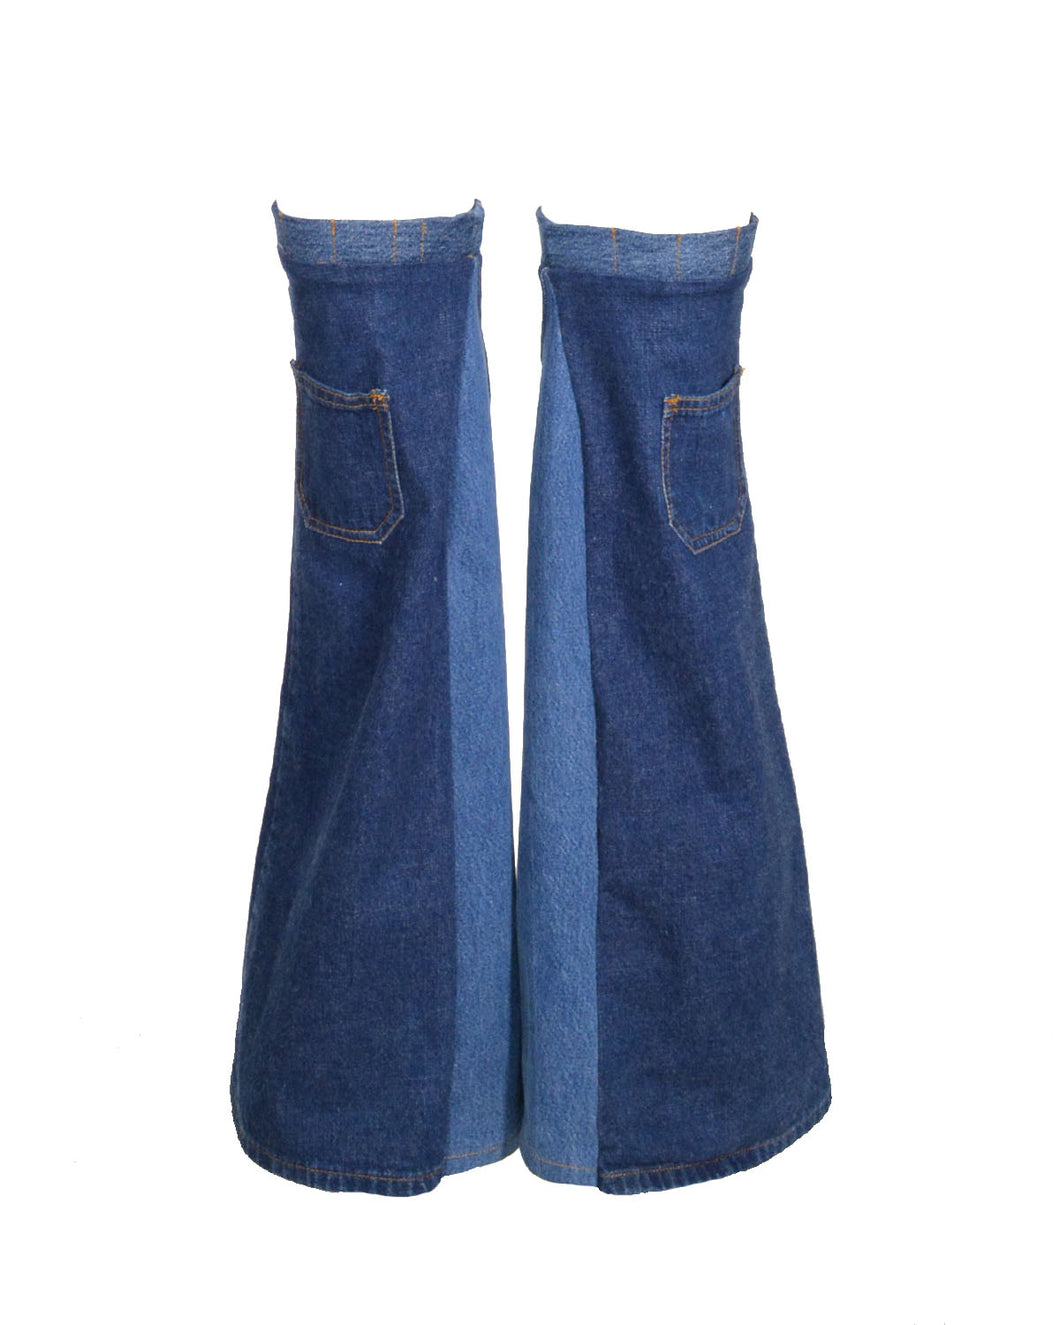 REWORKED DENIM BELLS